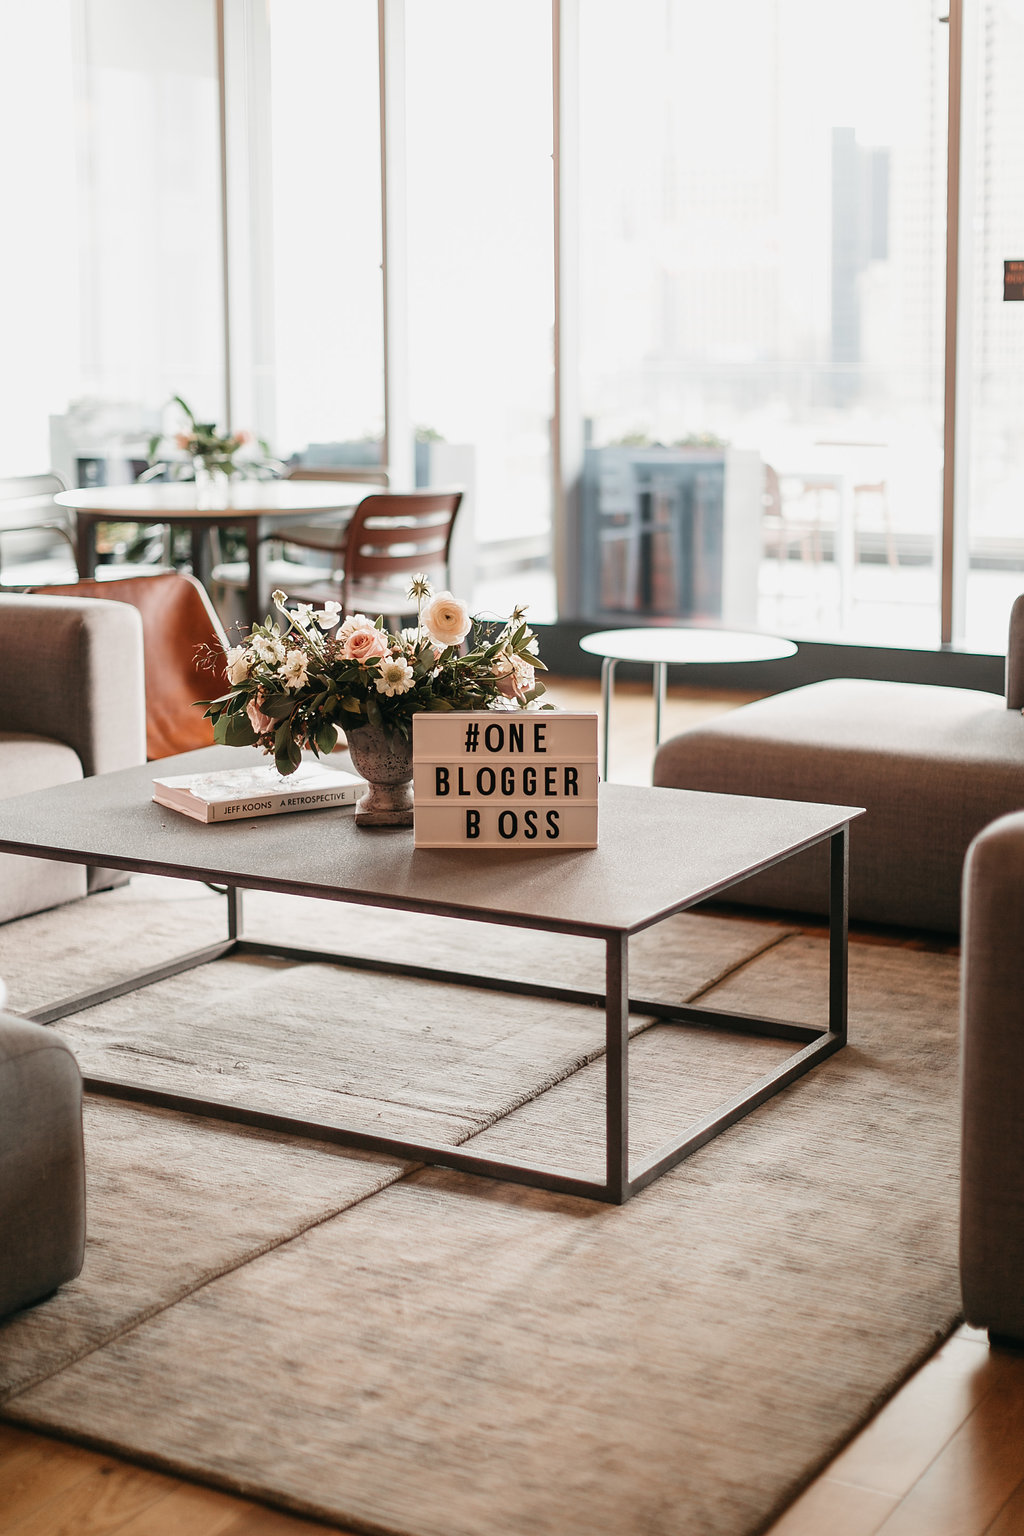 blogger boss workshop spring 2018 at WeWork in Uptown Dallas